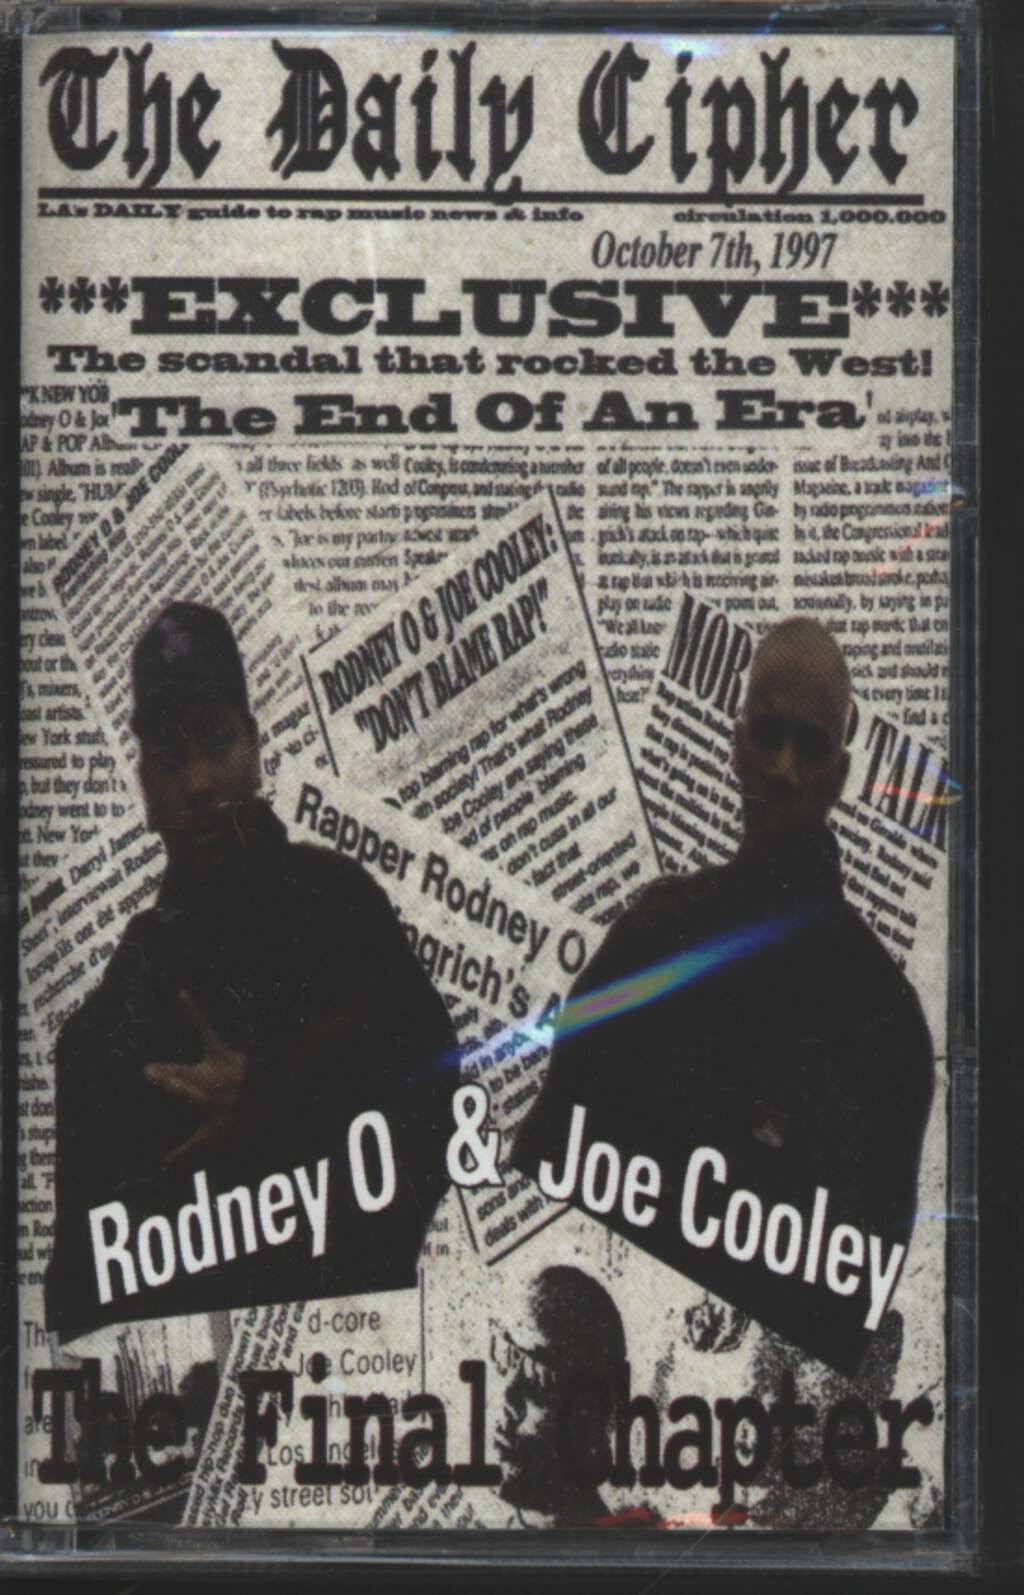 Rodney O + Joe Cooley: The Final Chapter, Tape